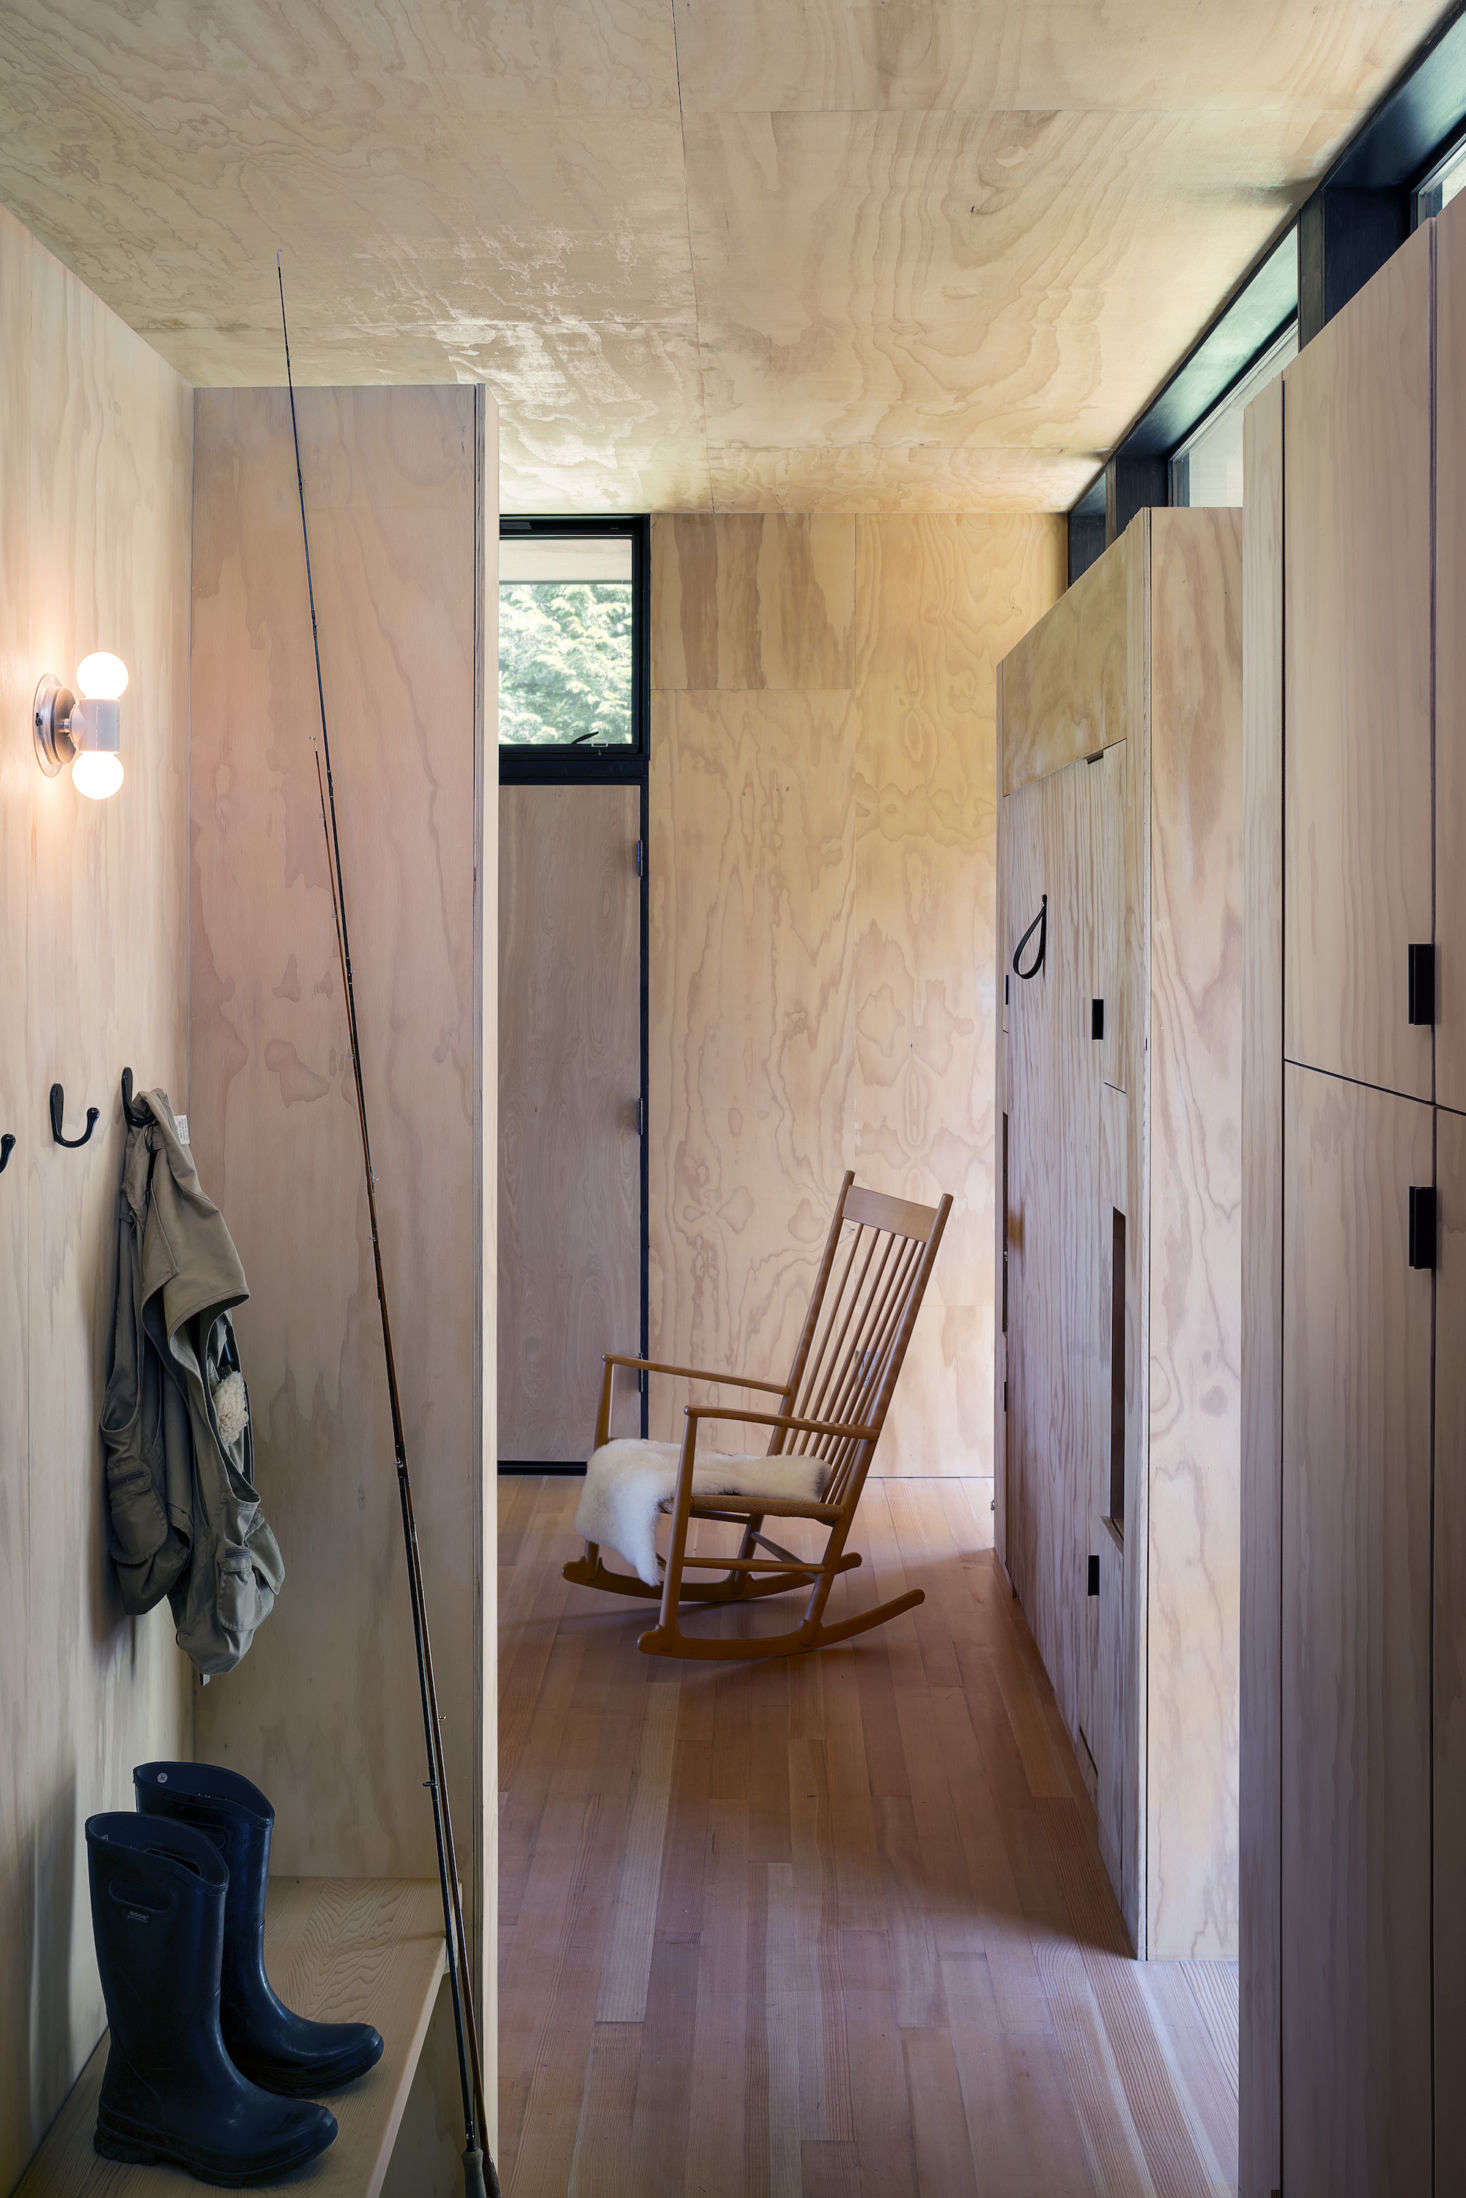 The entry into the main cabin. Just beyond is a Hans Wegner rocking chair and a hidden Murphy bed on the right wall of the living room. The flooring is fir hardwood, and the ceiling and walls are clad in pine plywood.